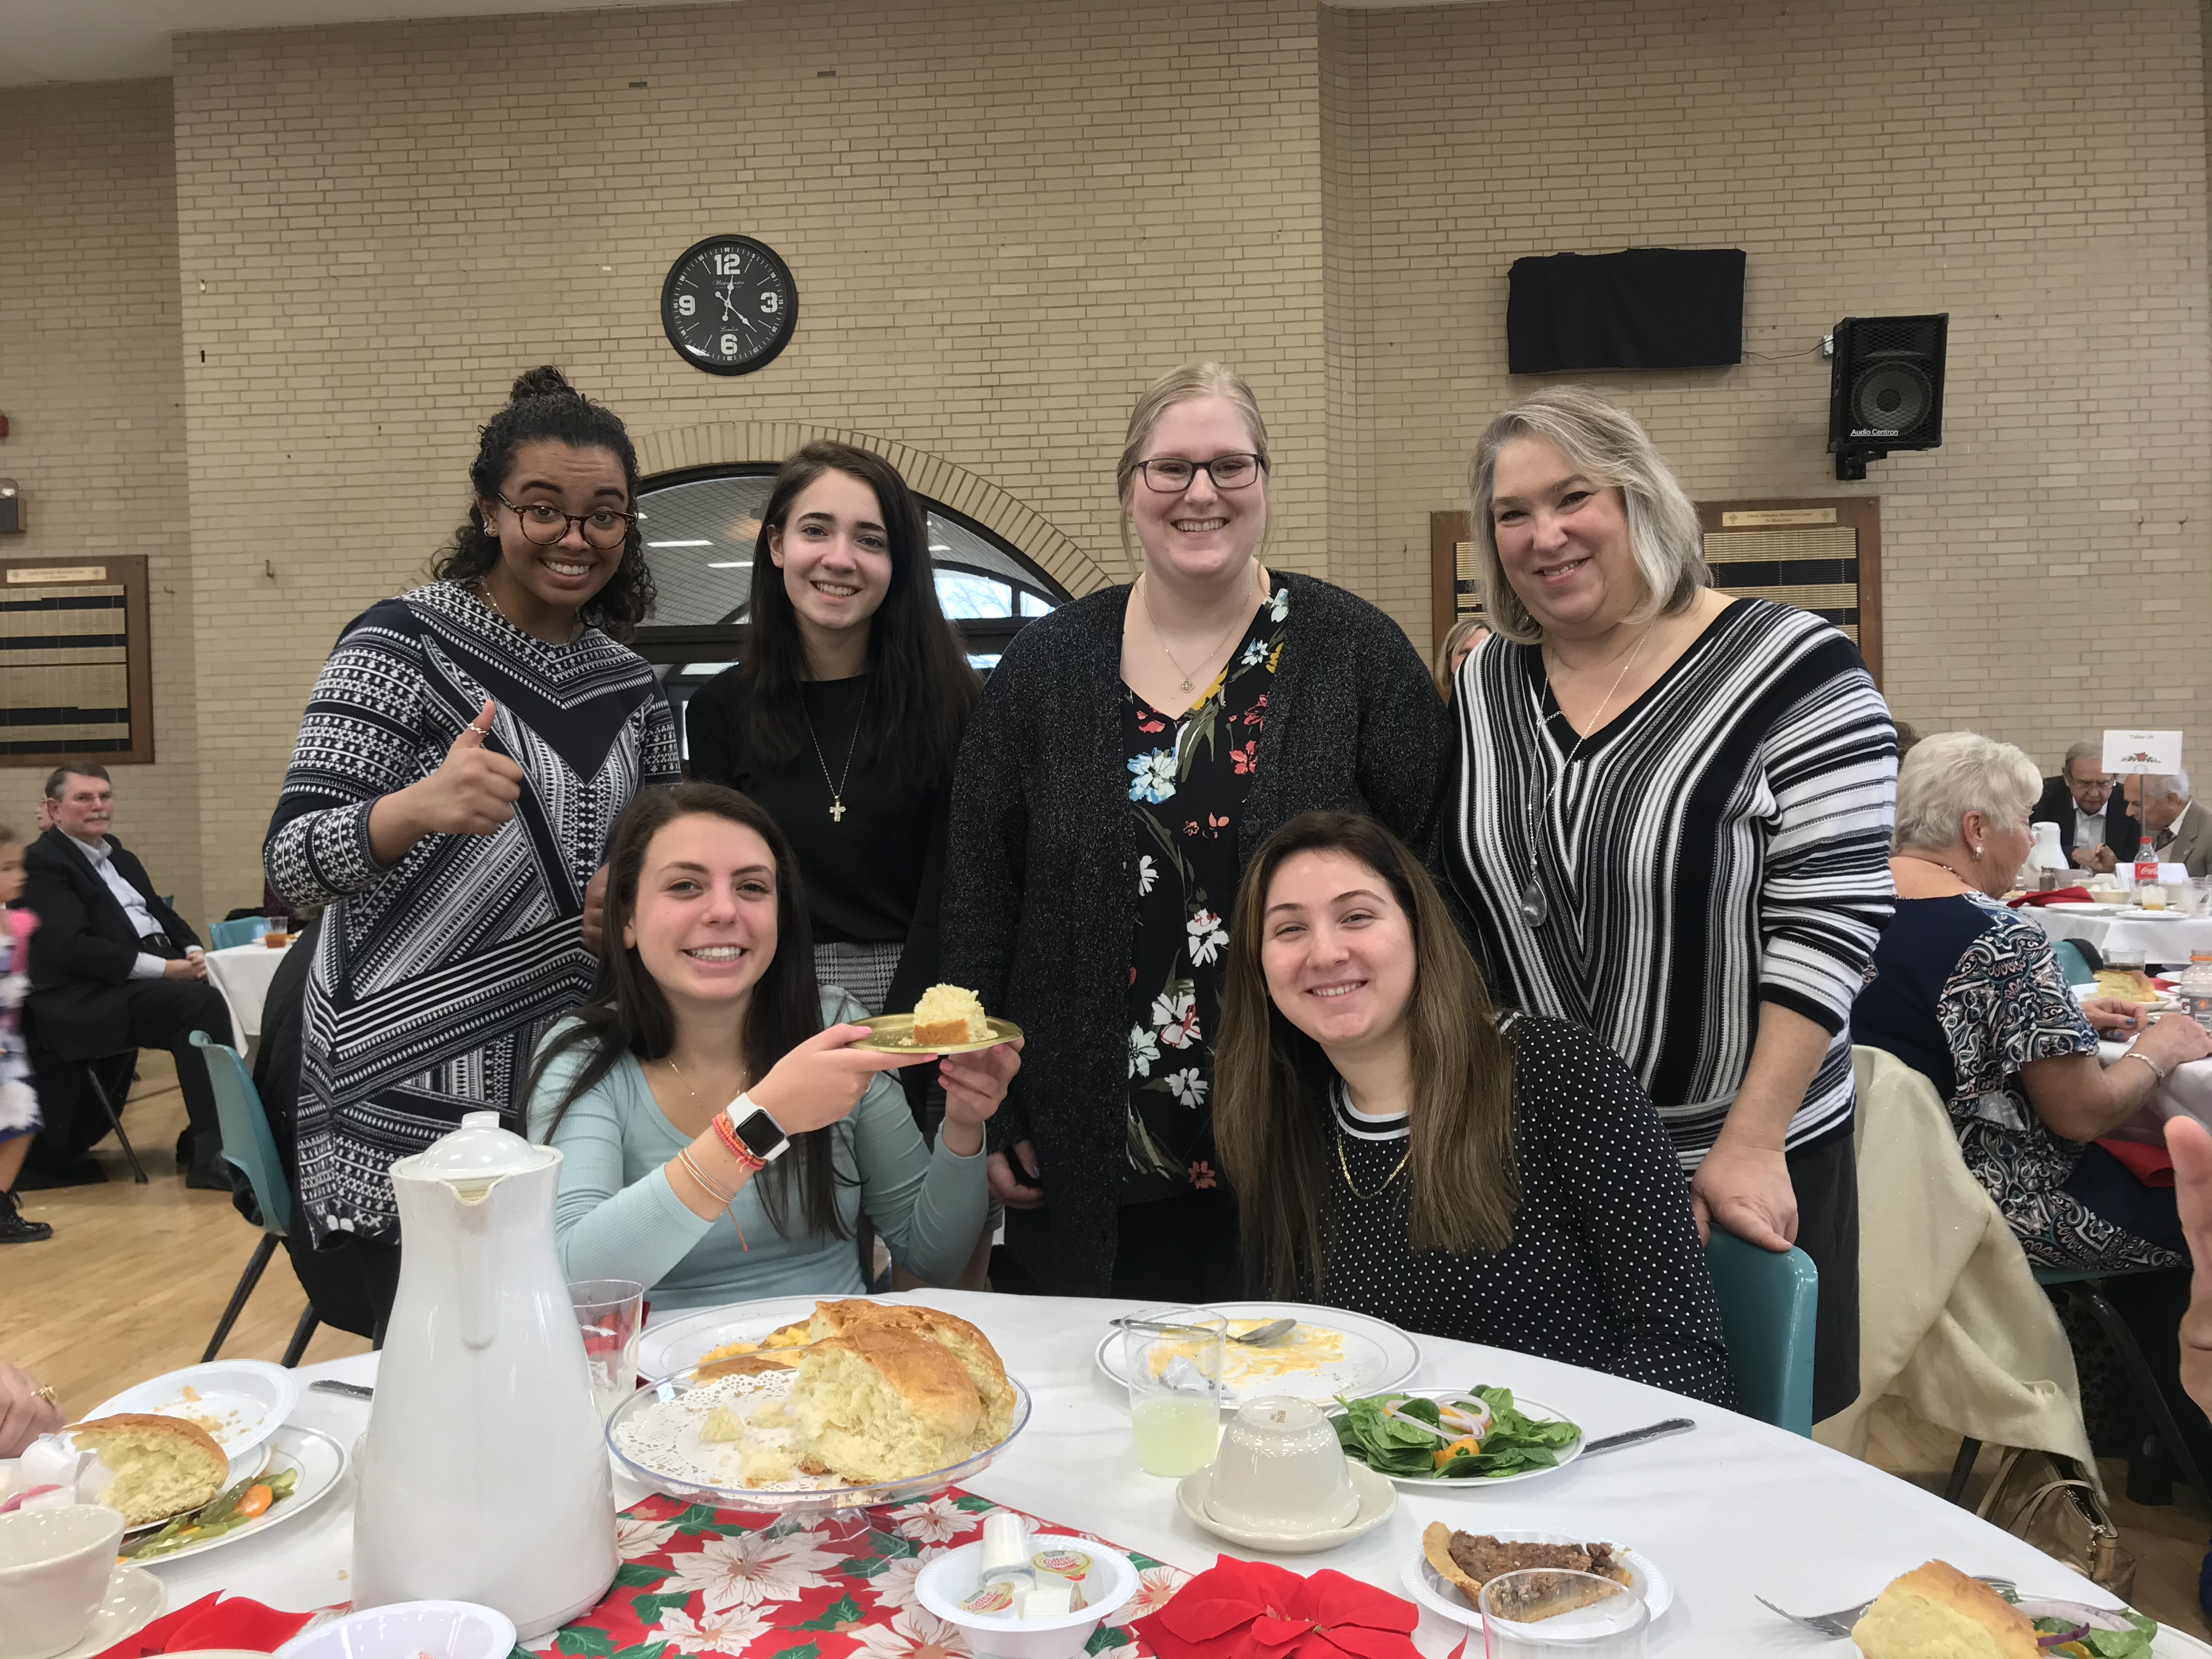 Dayton-MOA-Chapter-Venus-Maleia-celebrating-the-new-year-with-MOA-District-Governor-Sophia-Blessing-and-DOP-MOAA-Alexis-Blessing-Brun.